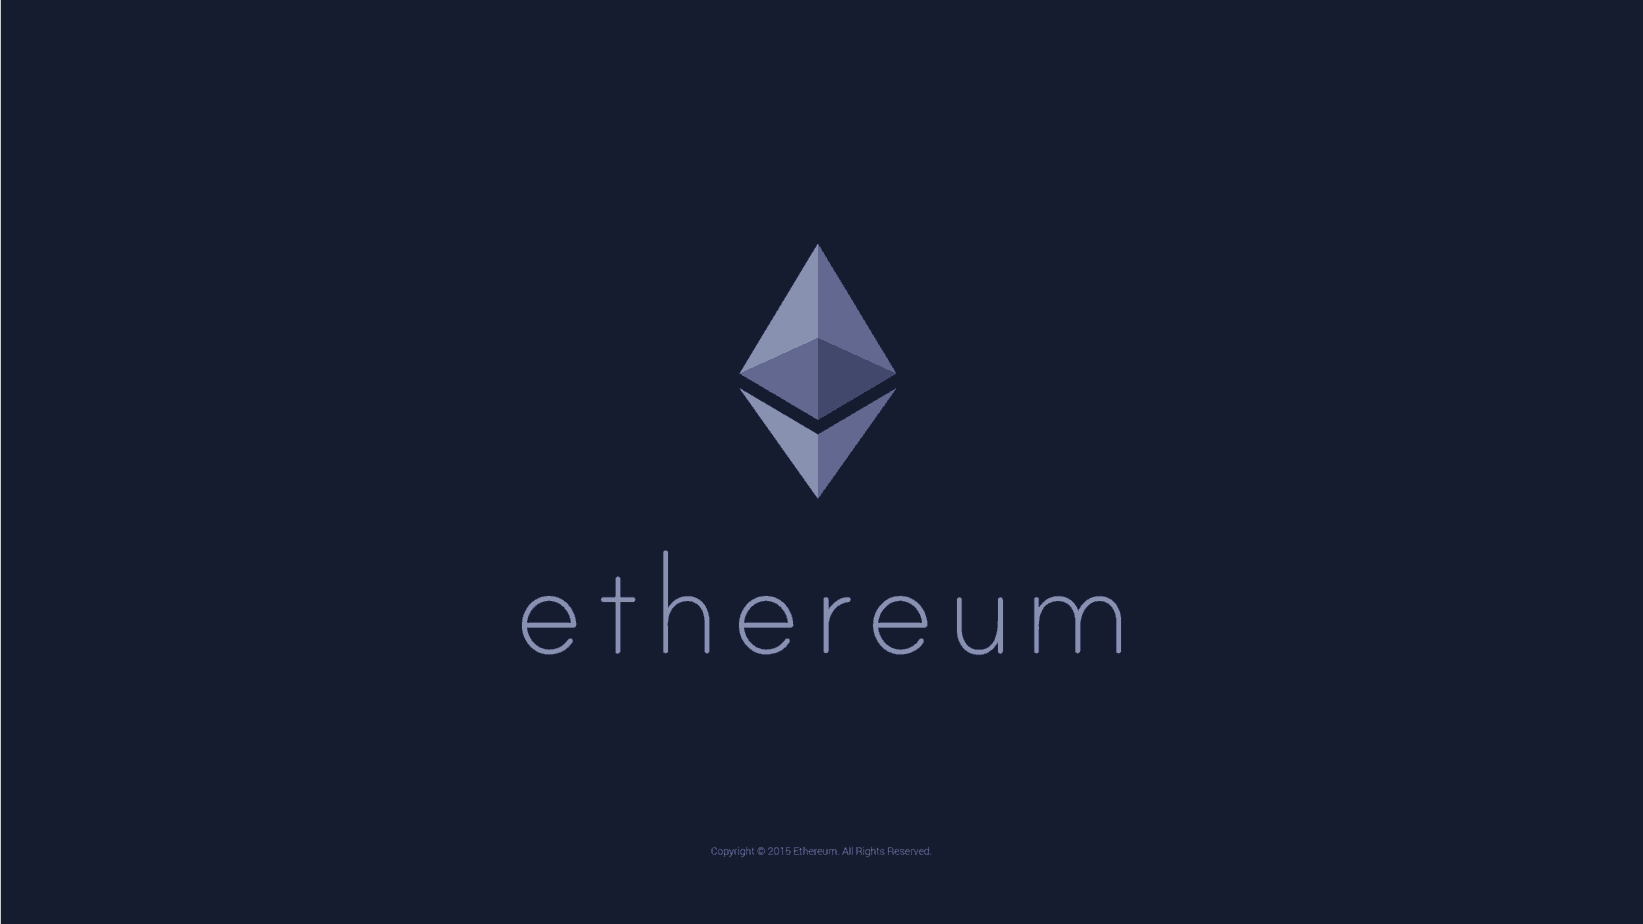 Cryptocurrency Wallpaper Hd The Ethereum Blockchain Is Helping Create The Next